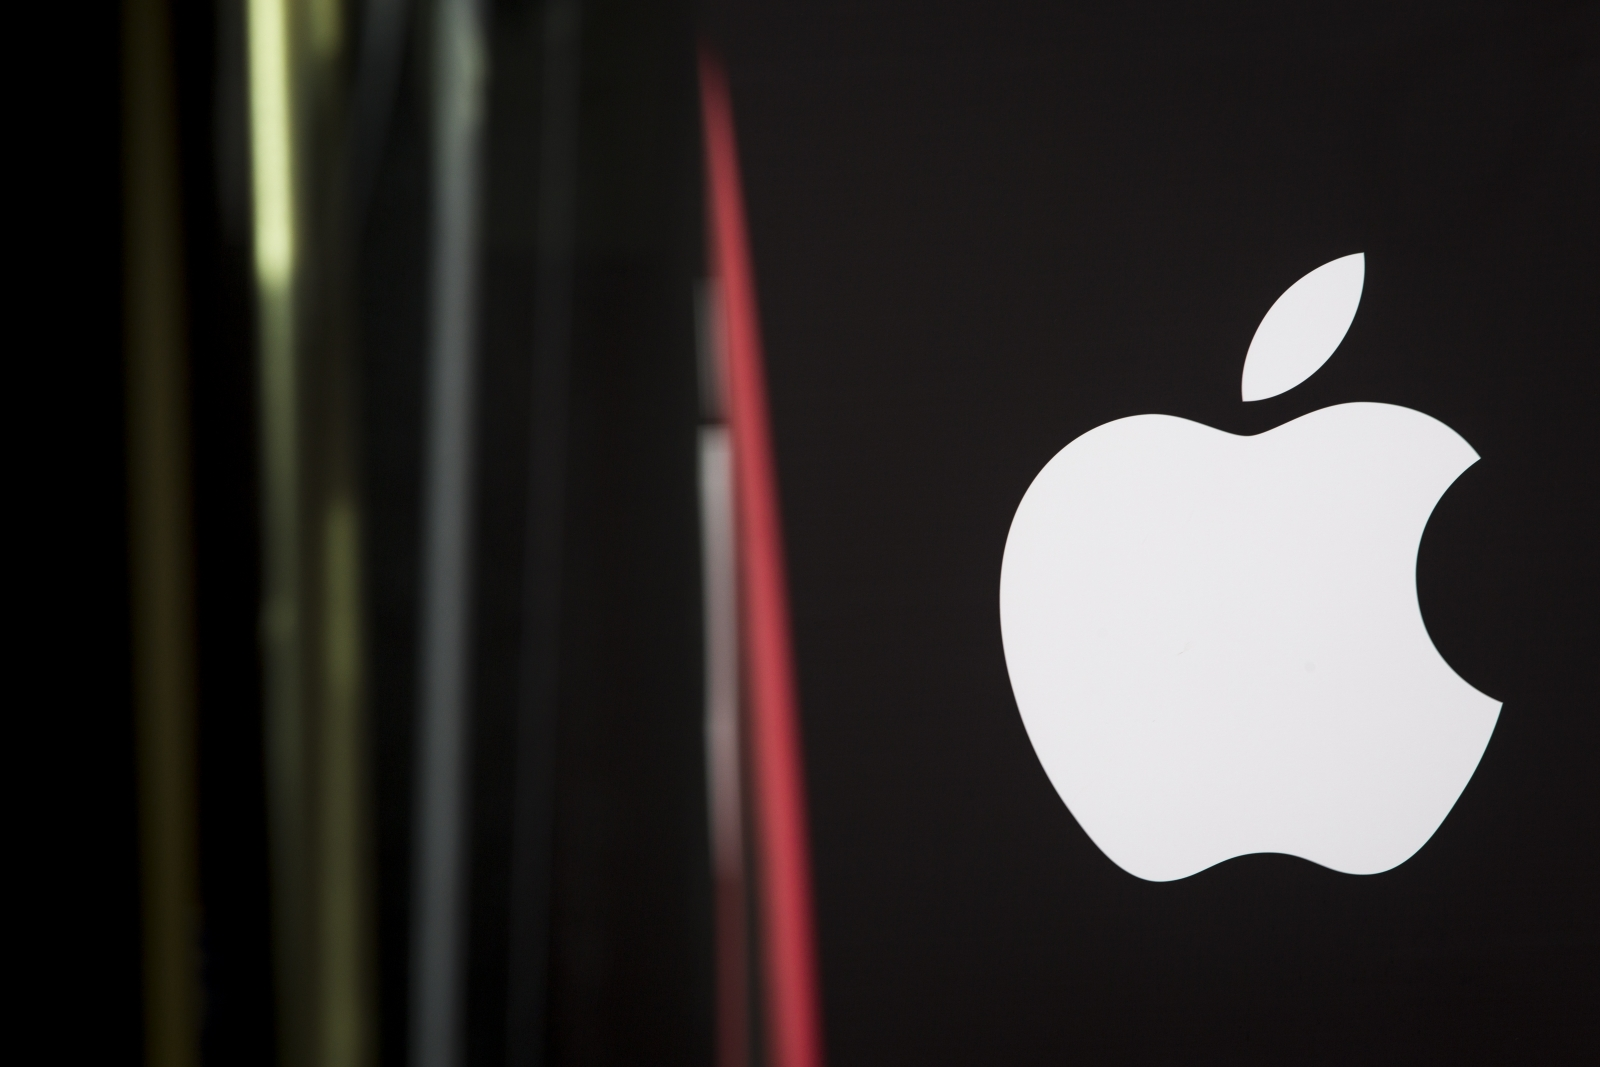 Apple developing car operating system